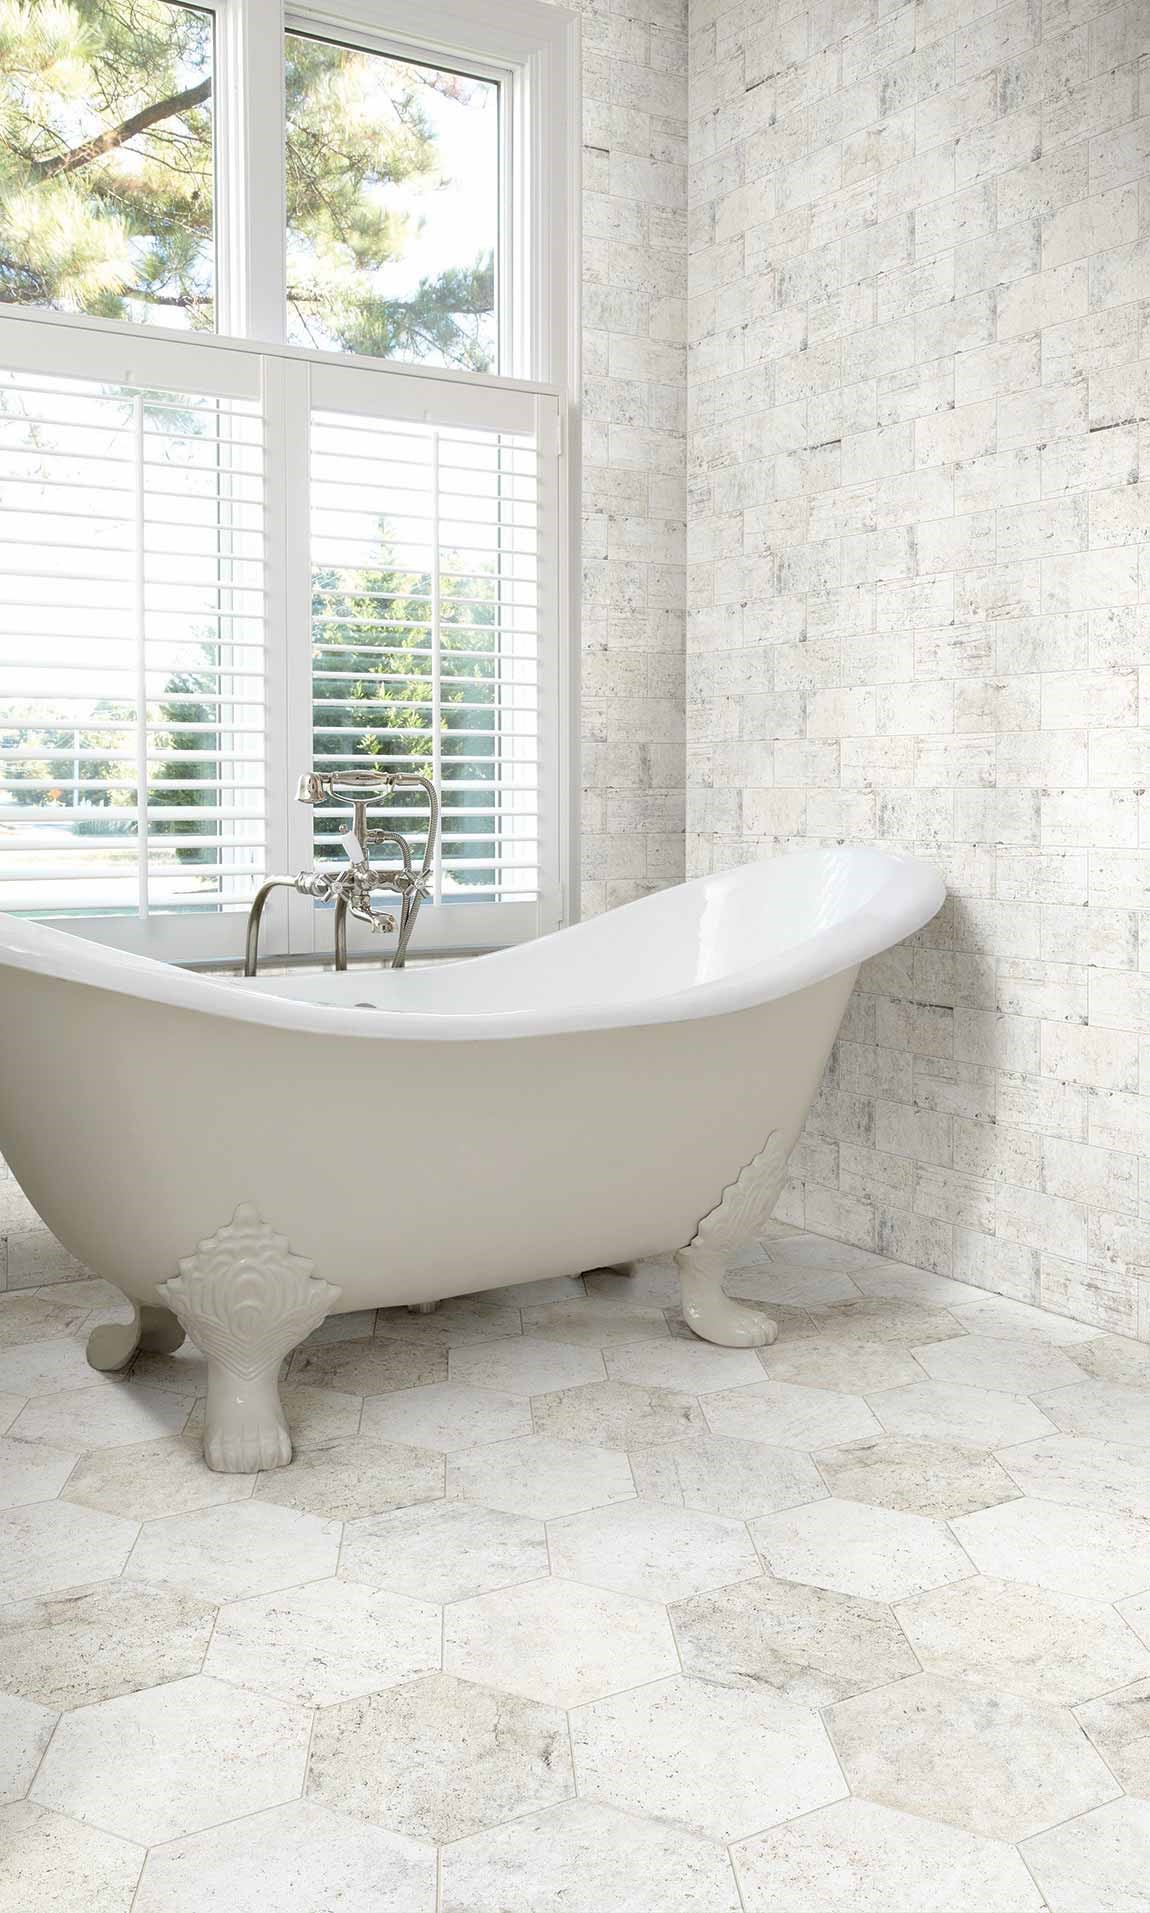 freestanding bathtub in light colored bathroom with ceramic tile